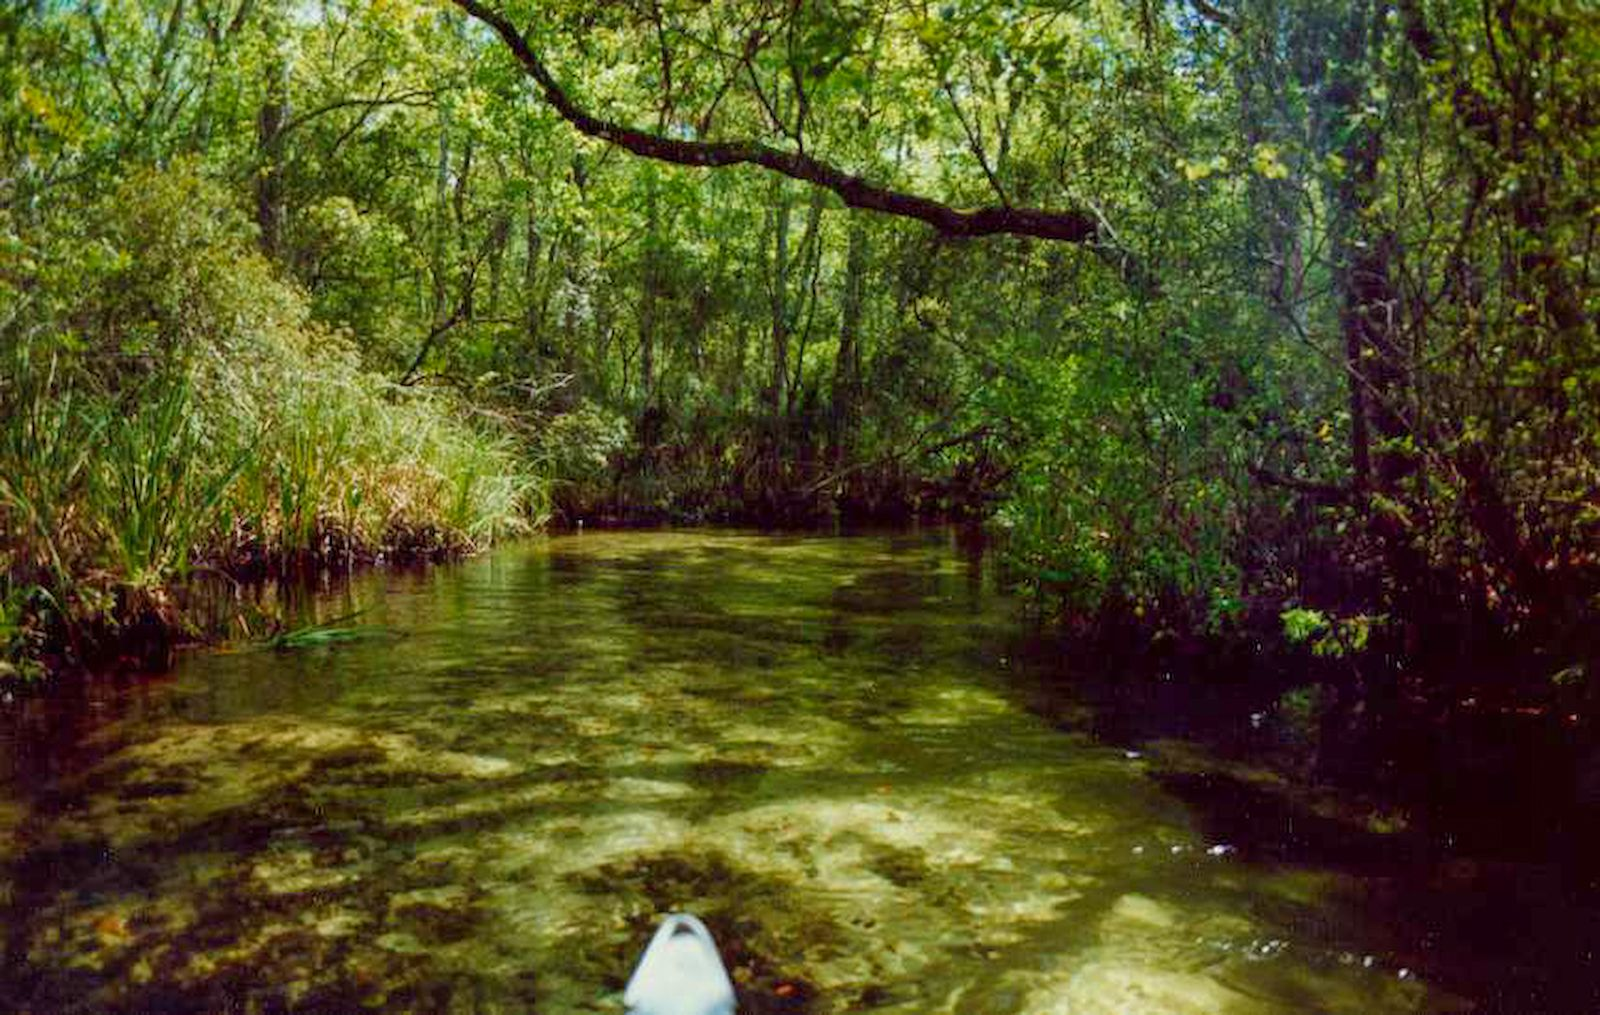 Paddling Juniper Run under dense forest canopy.  Day paddle in Ocala National Forest, Florida